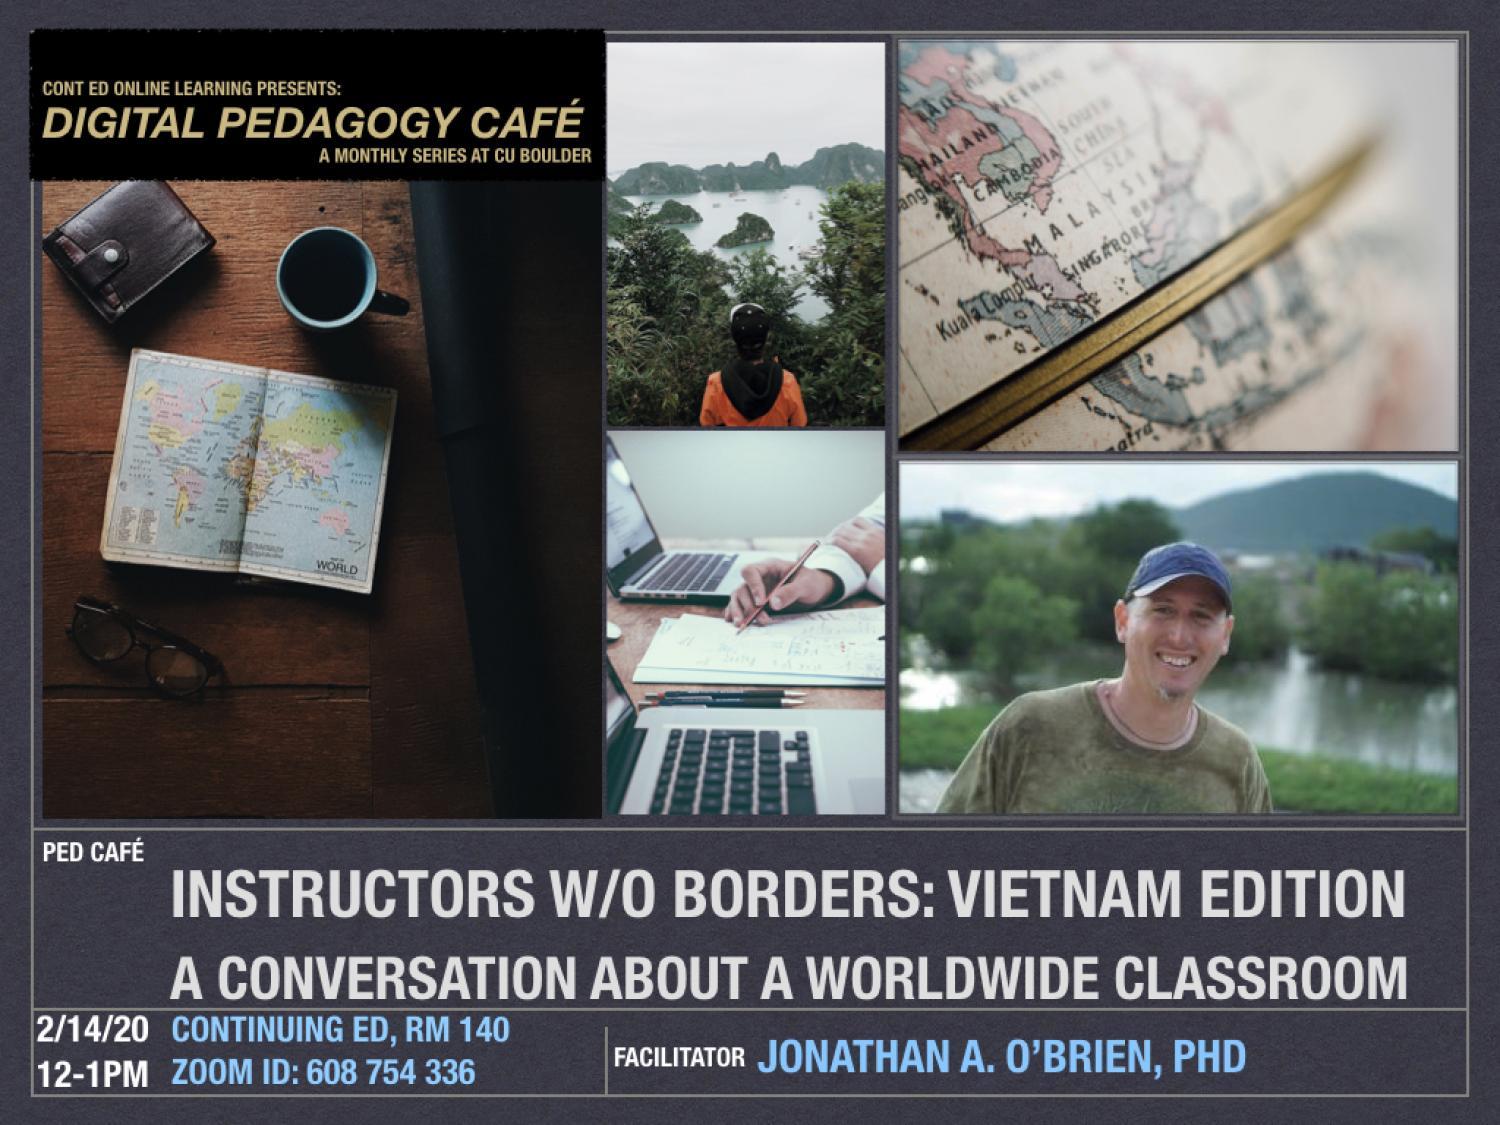 Ped Cafe 2/14/2020, 12pm to 1pm - Continuing Education Room 140 - Session Title: Instructors without borders, Vietnam edition. Facilitator: Jonathan O'Brian PhD.